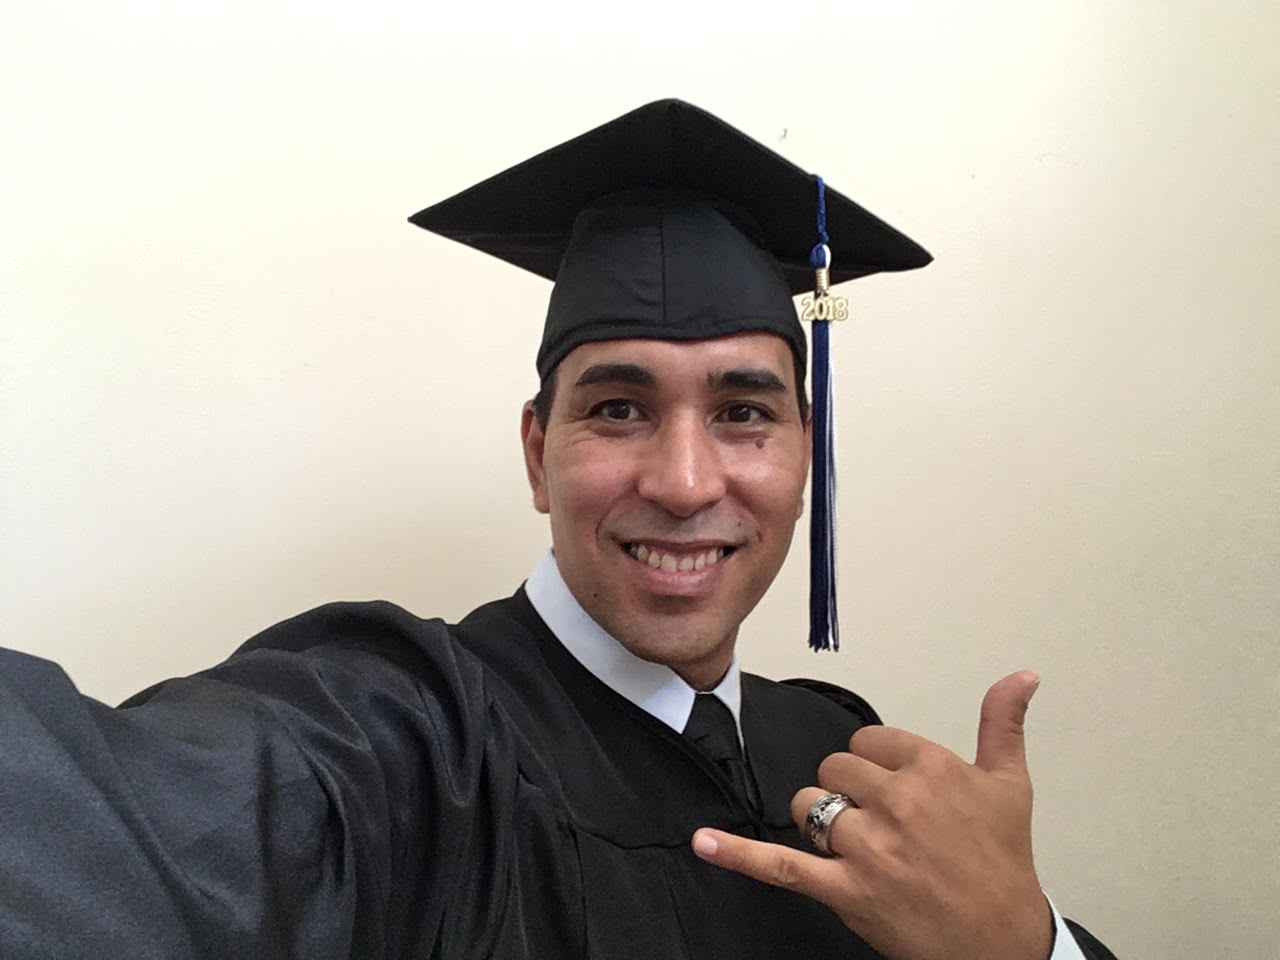 Joseph (Keahi) Carrero has been chosen as the Spring 2018 undergraduate commencement speaker.